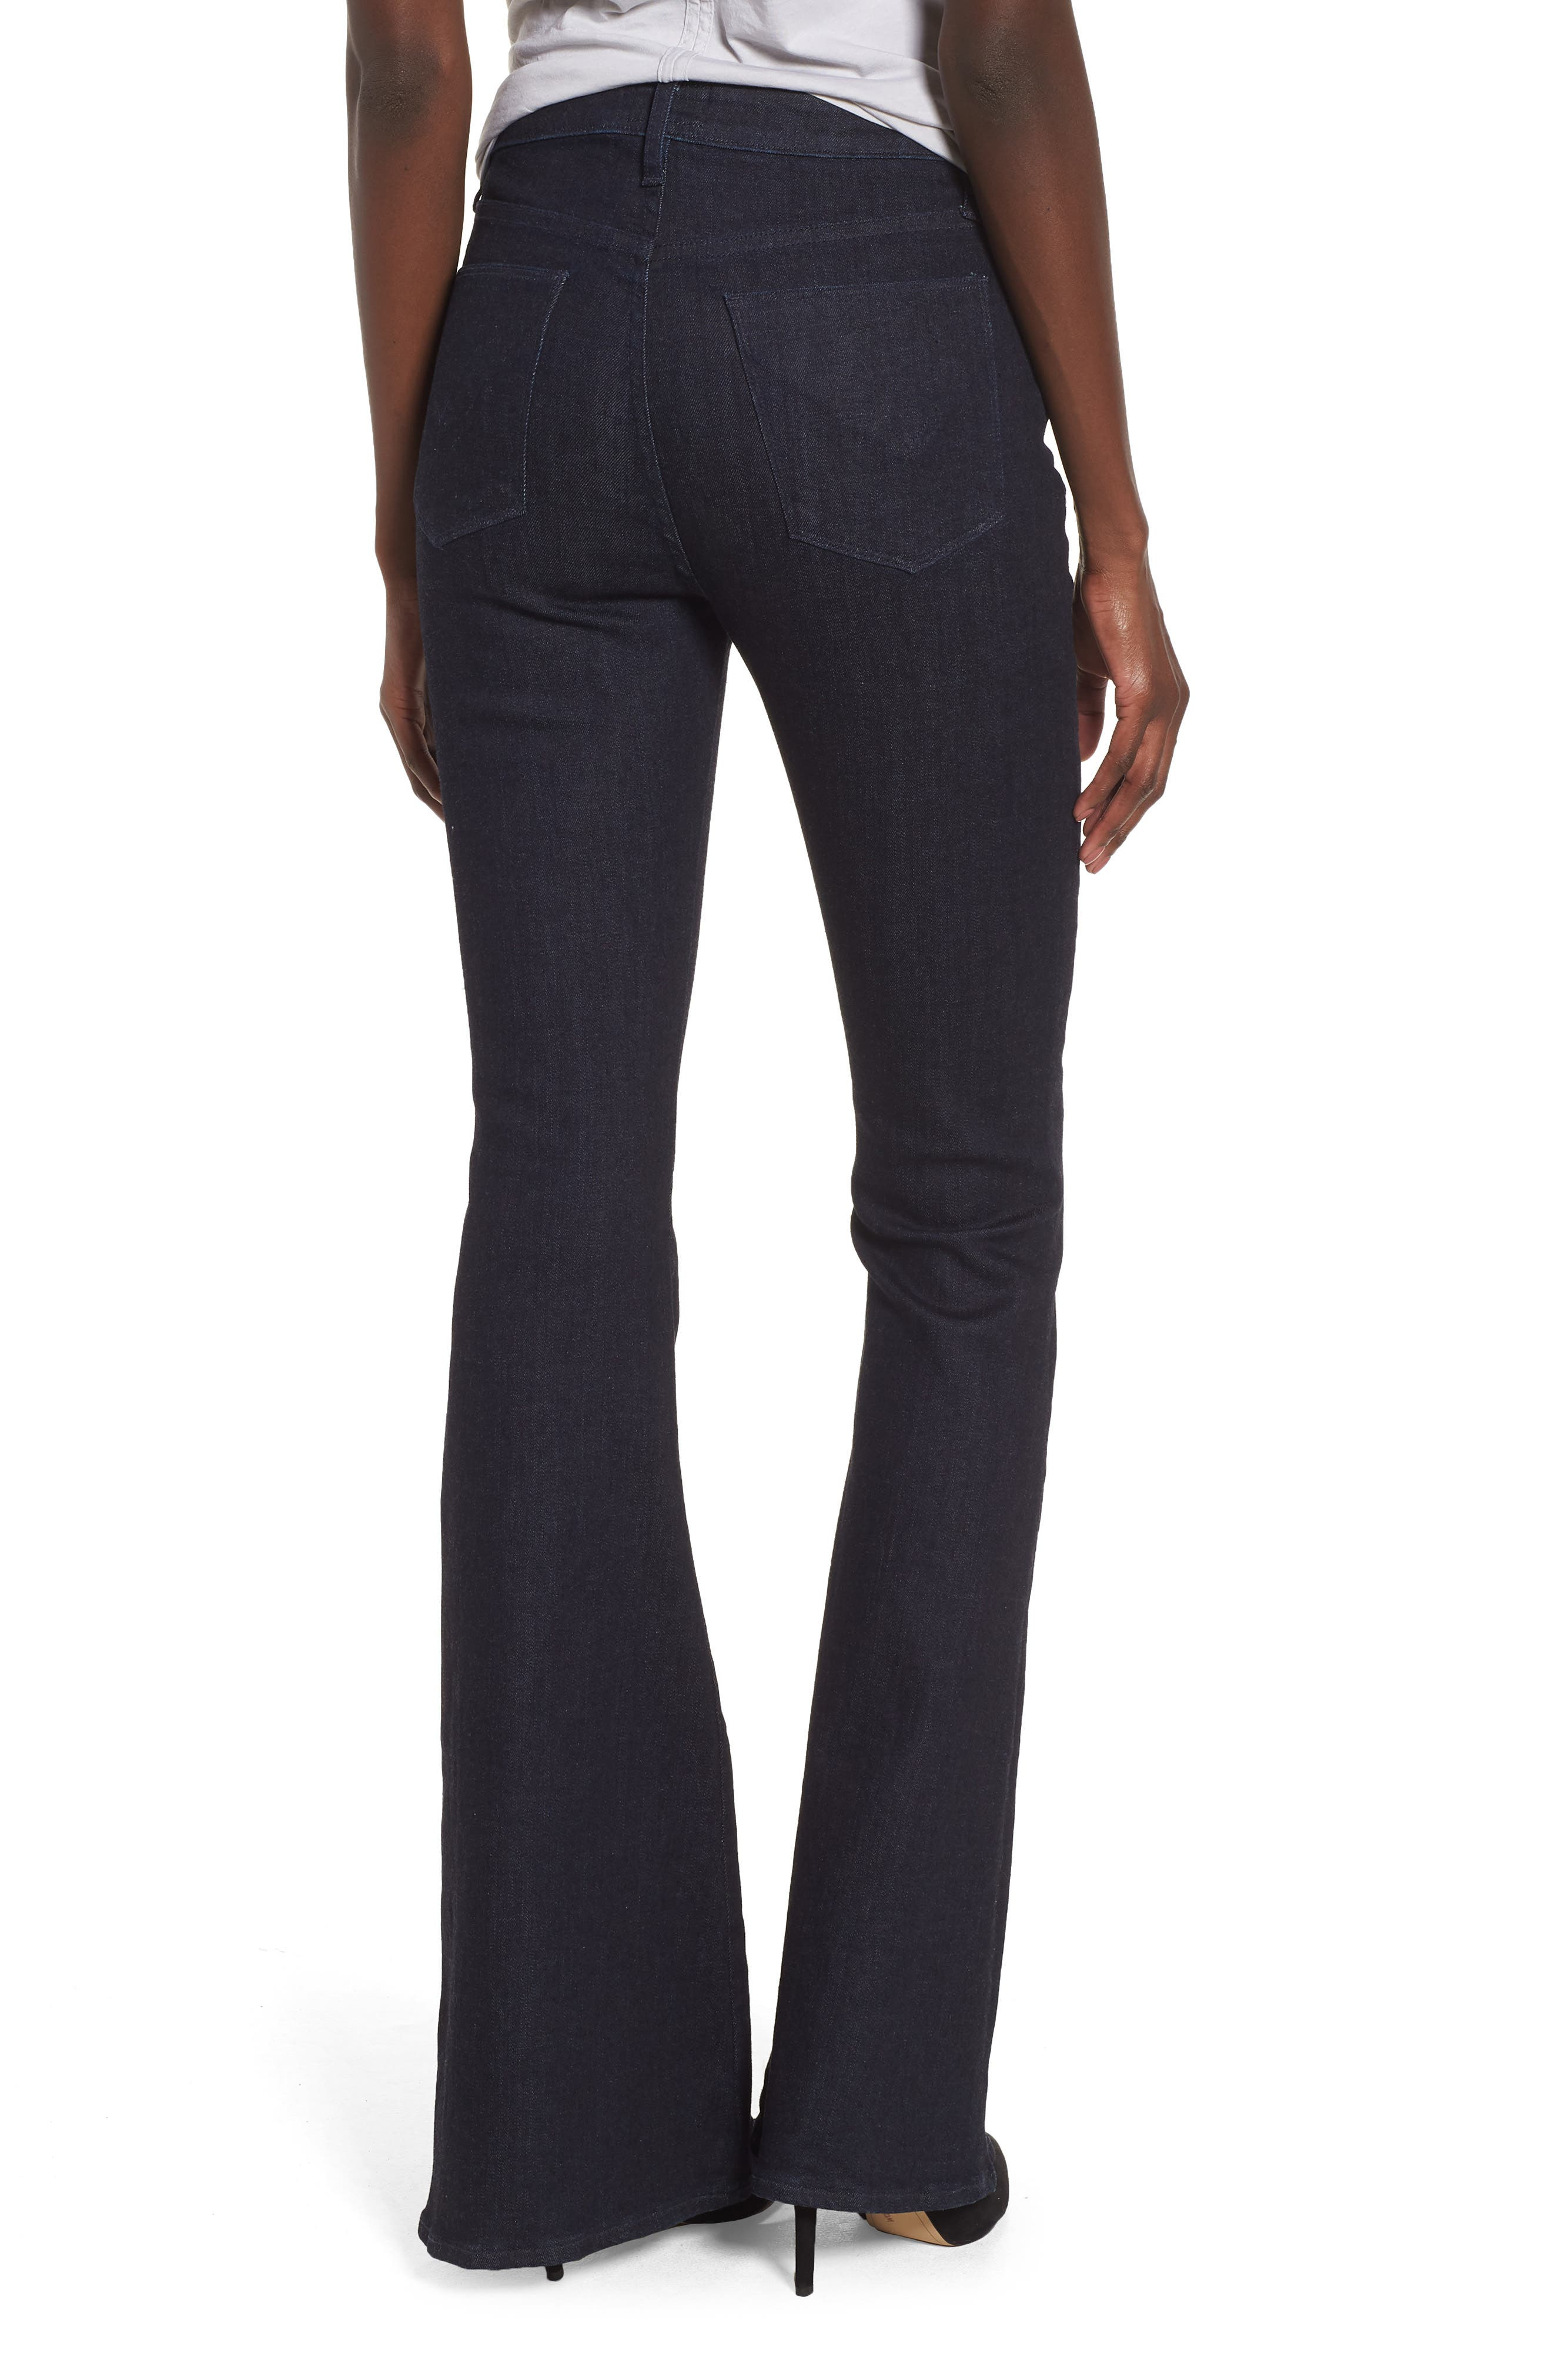 Holly High Waist Flare Jeans,                             Alternate thumbnail 2, color,                             Infuse